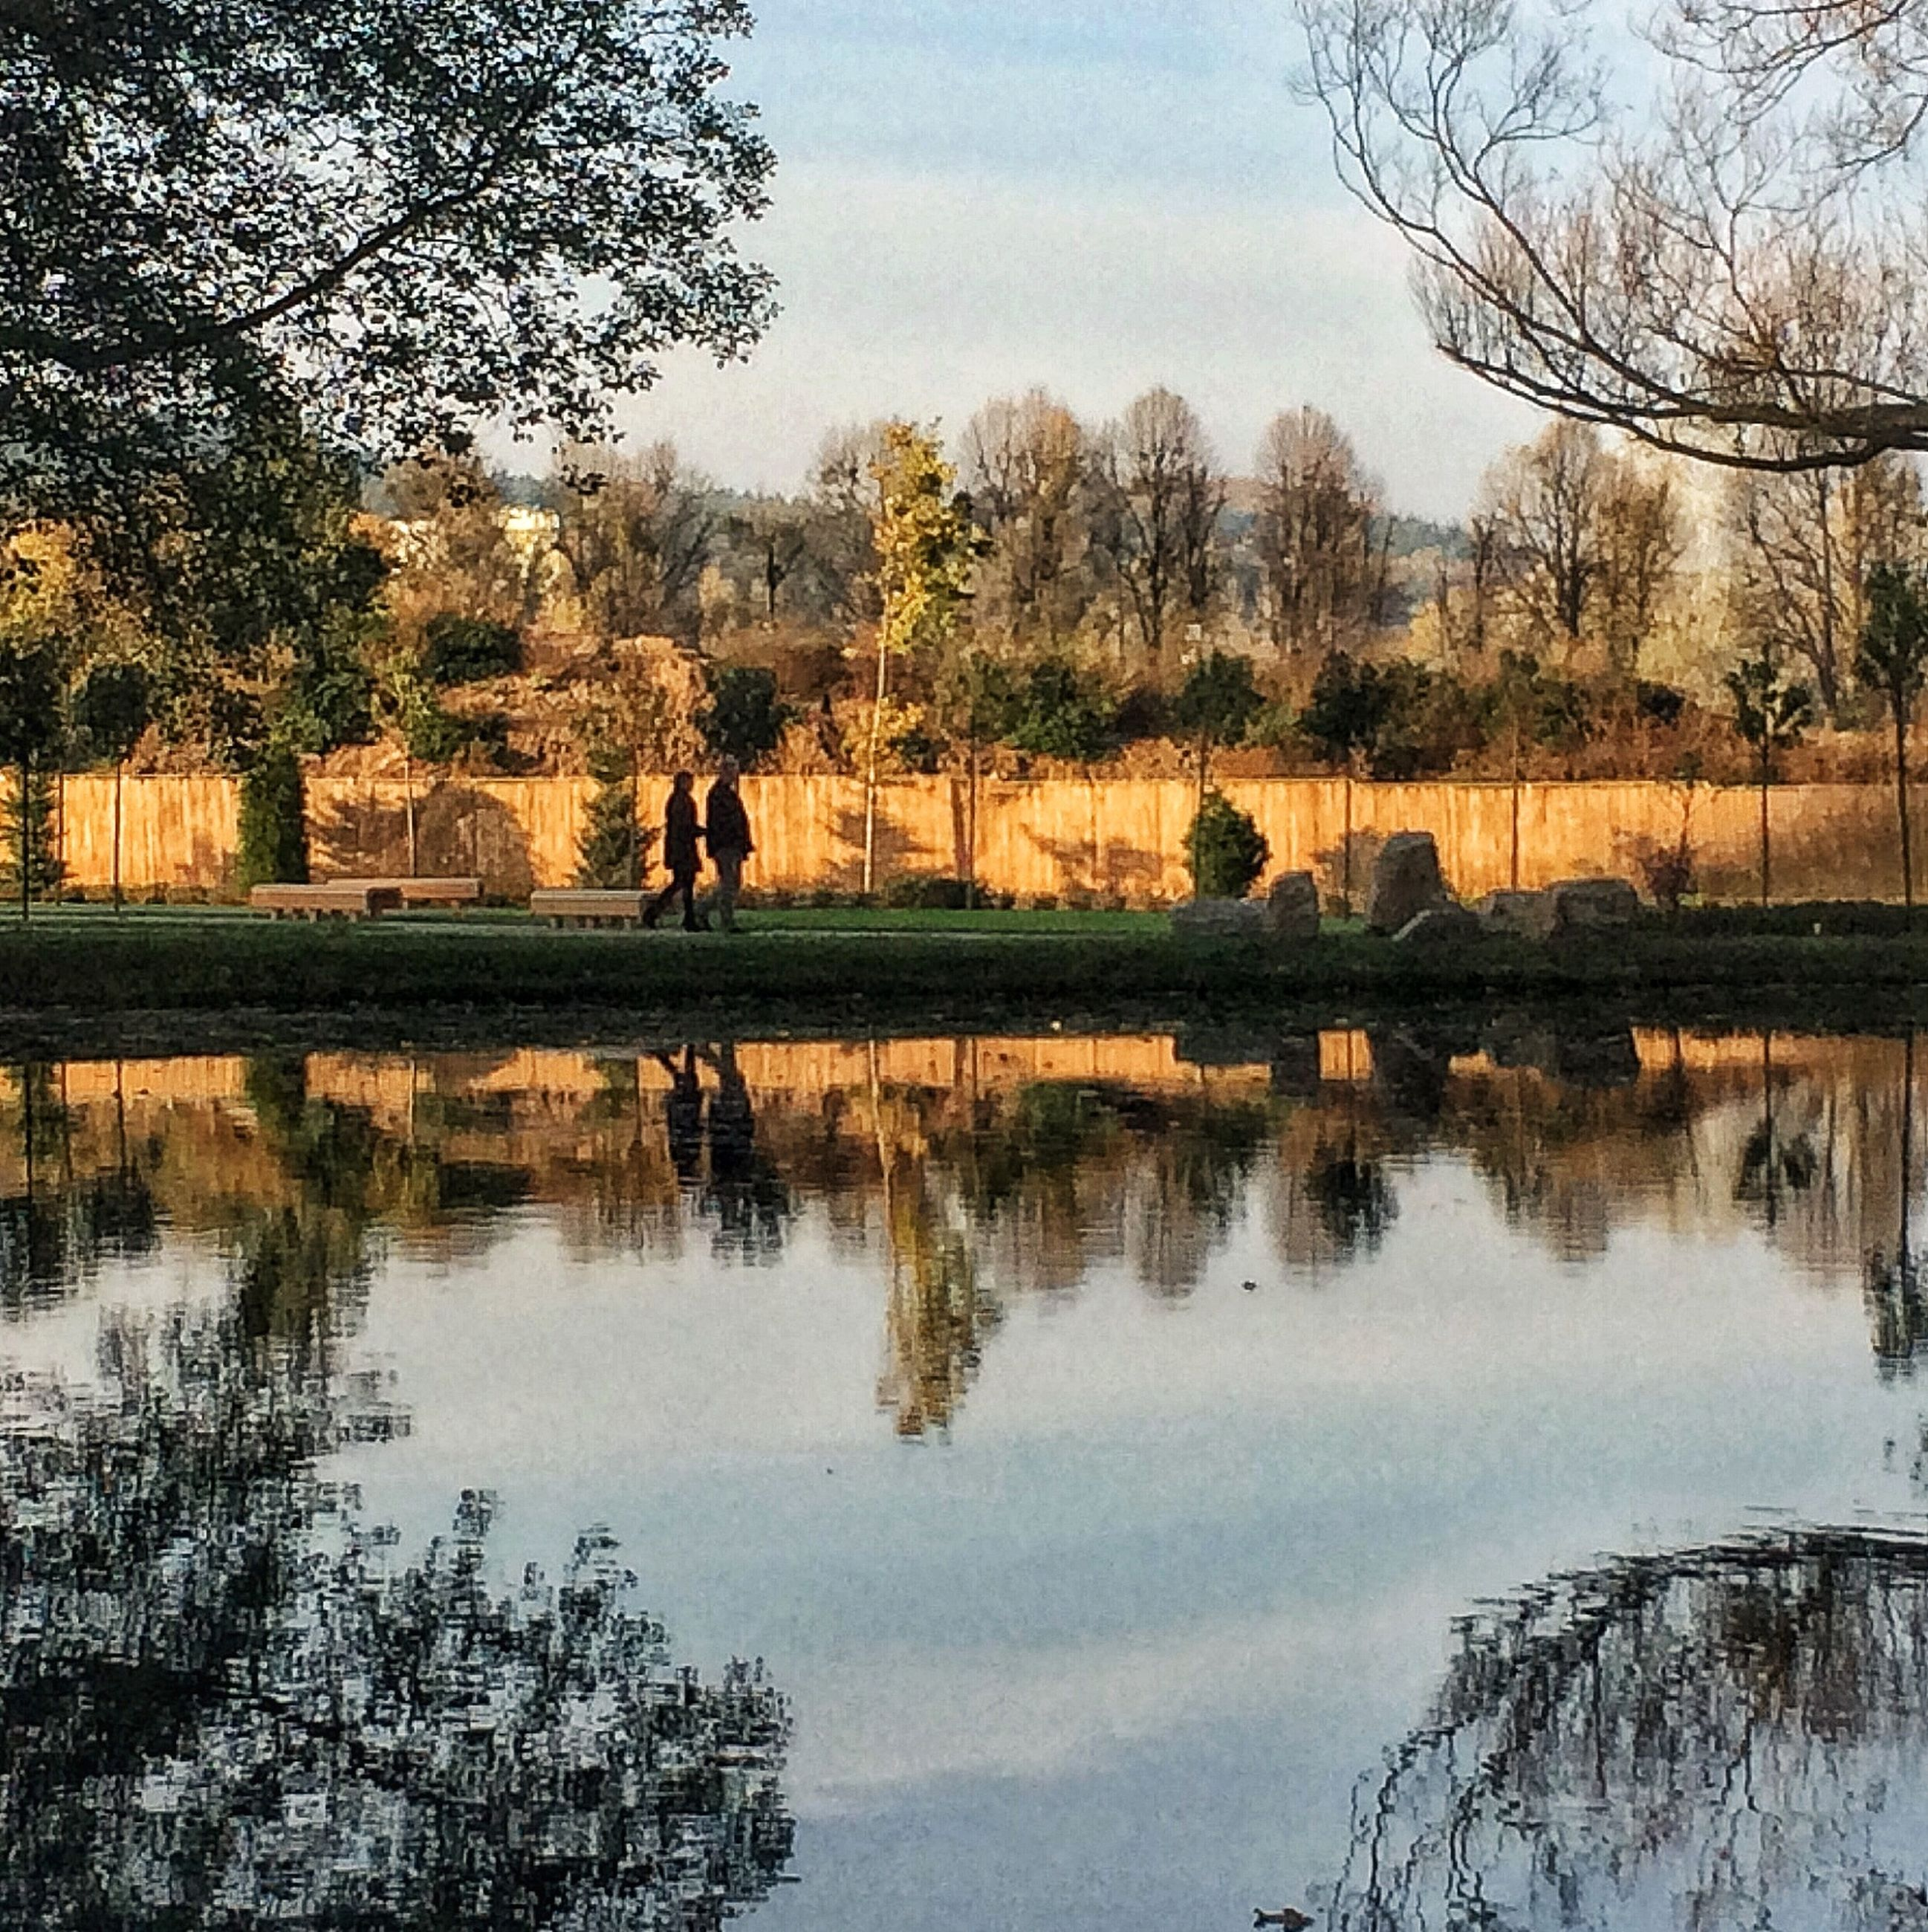 tree, reflection, water, lake, bare tree, tranquility, tranquil scene, nature, lifestyles, men, leisure activity, beauty in nature, scenics, sky, river, rear view, standing, silhouette